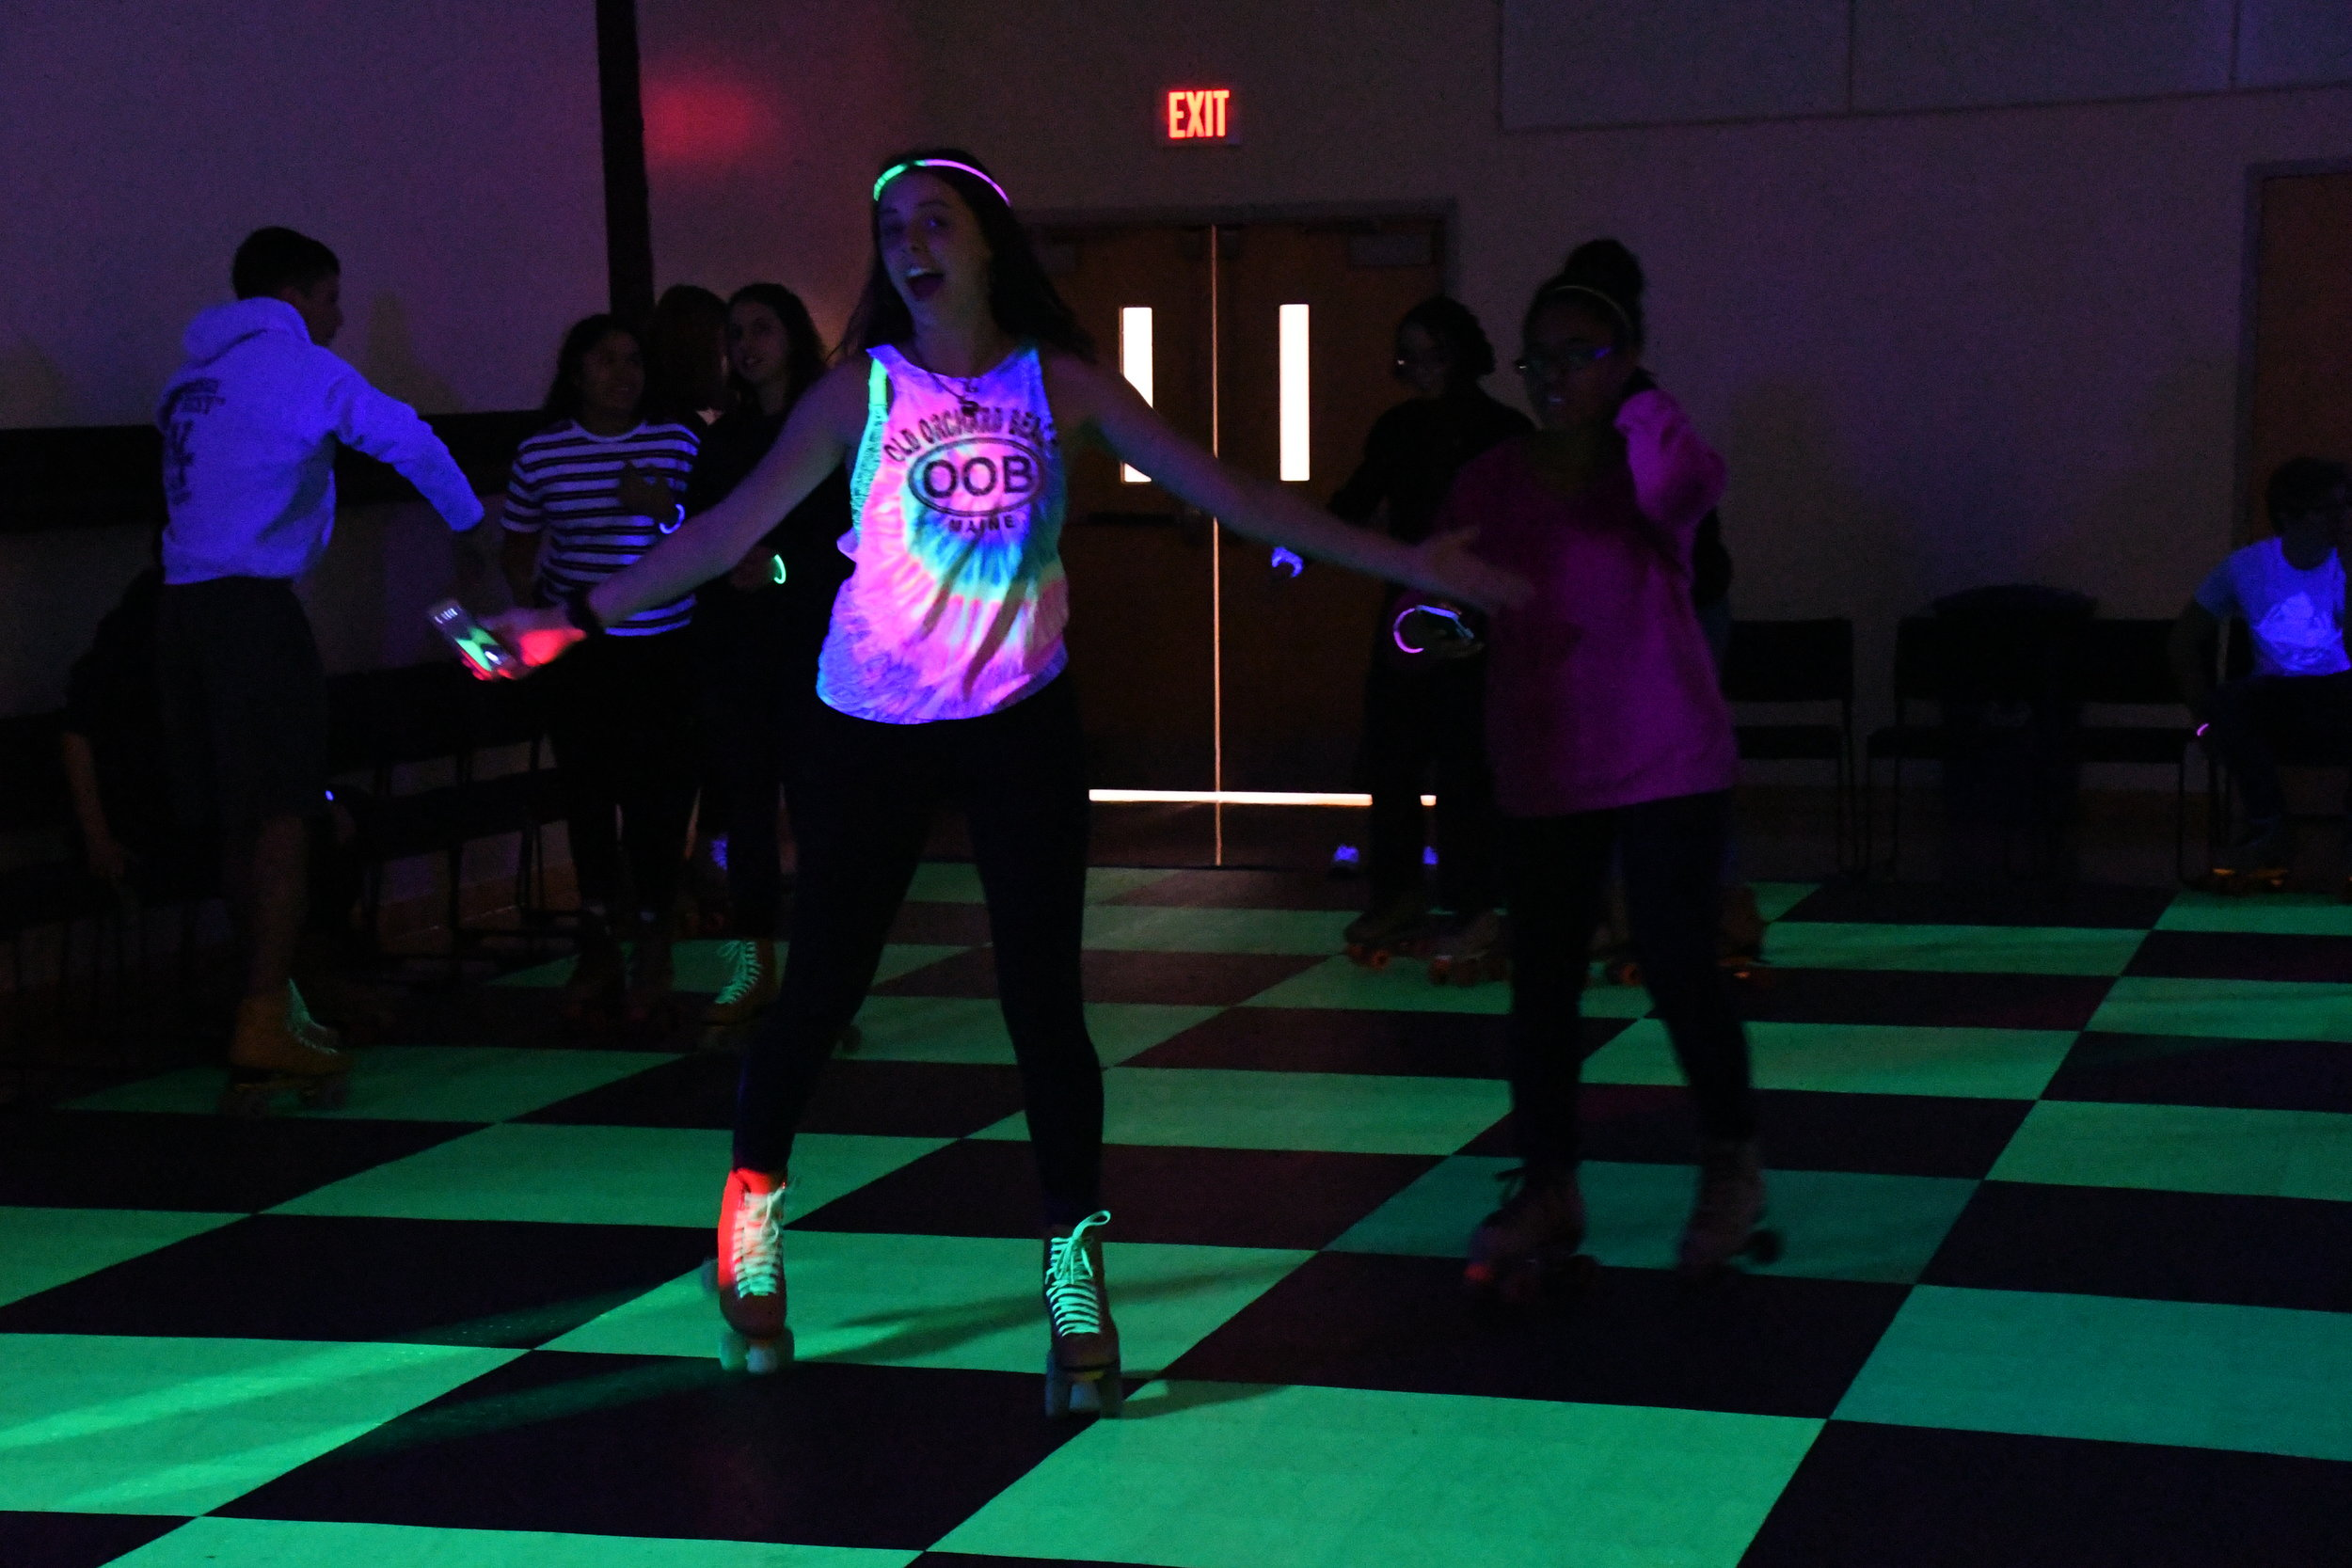 Students roller-skate in the Student Union Ballroom to fun music. SUBOG held this colorful even last night. (Julie Spillane/The Daily Campus)